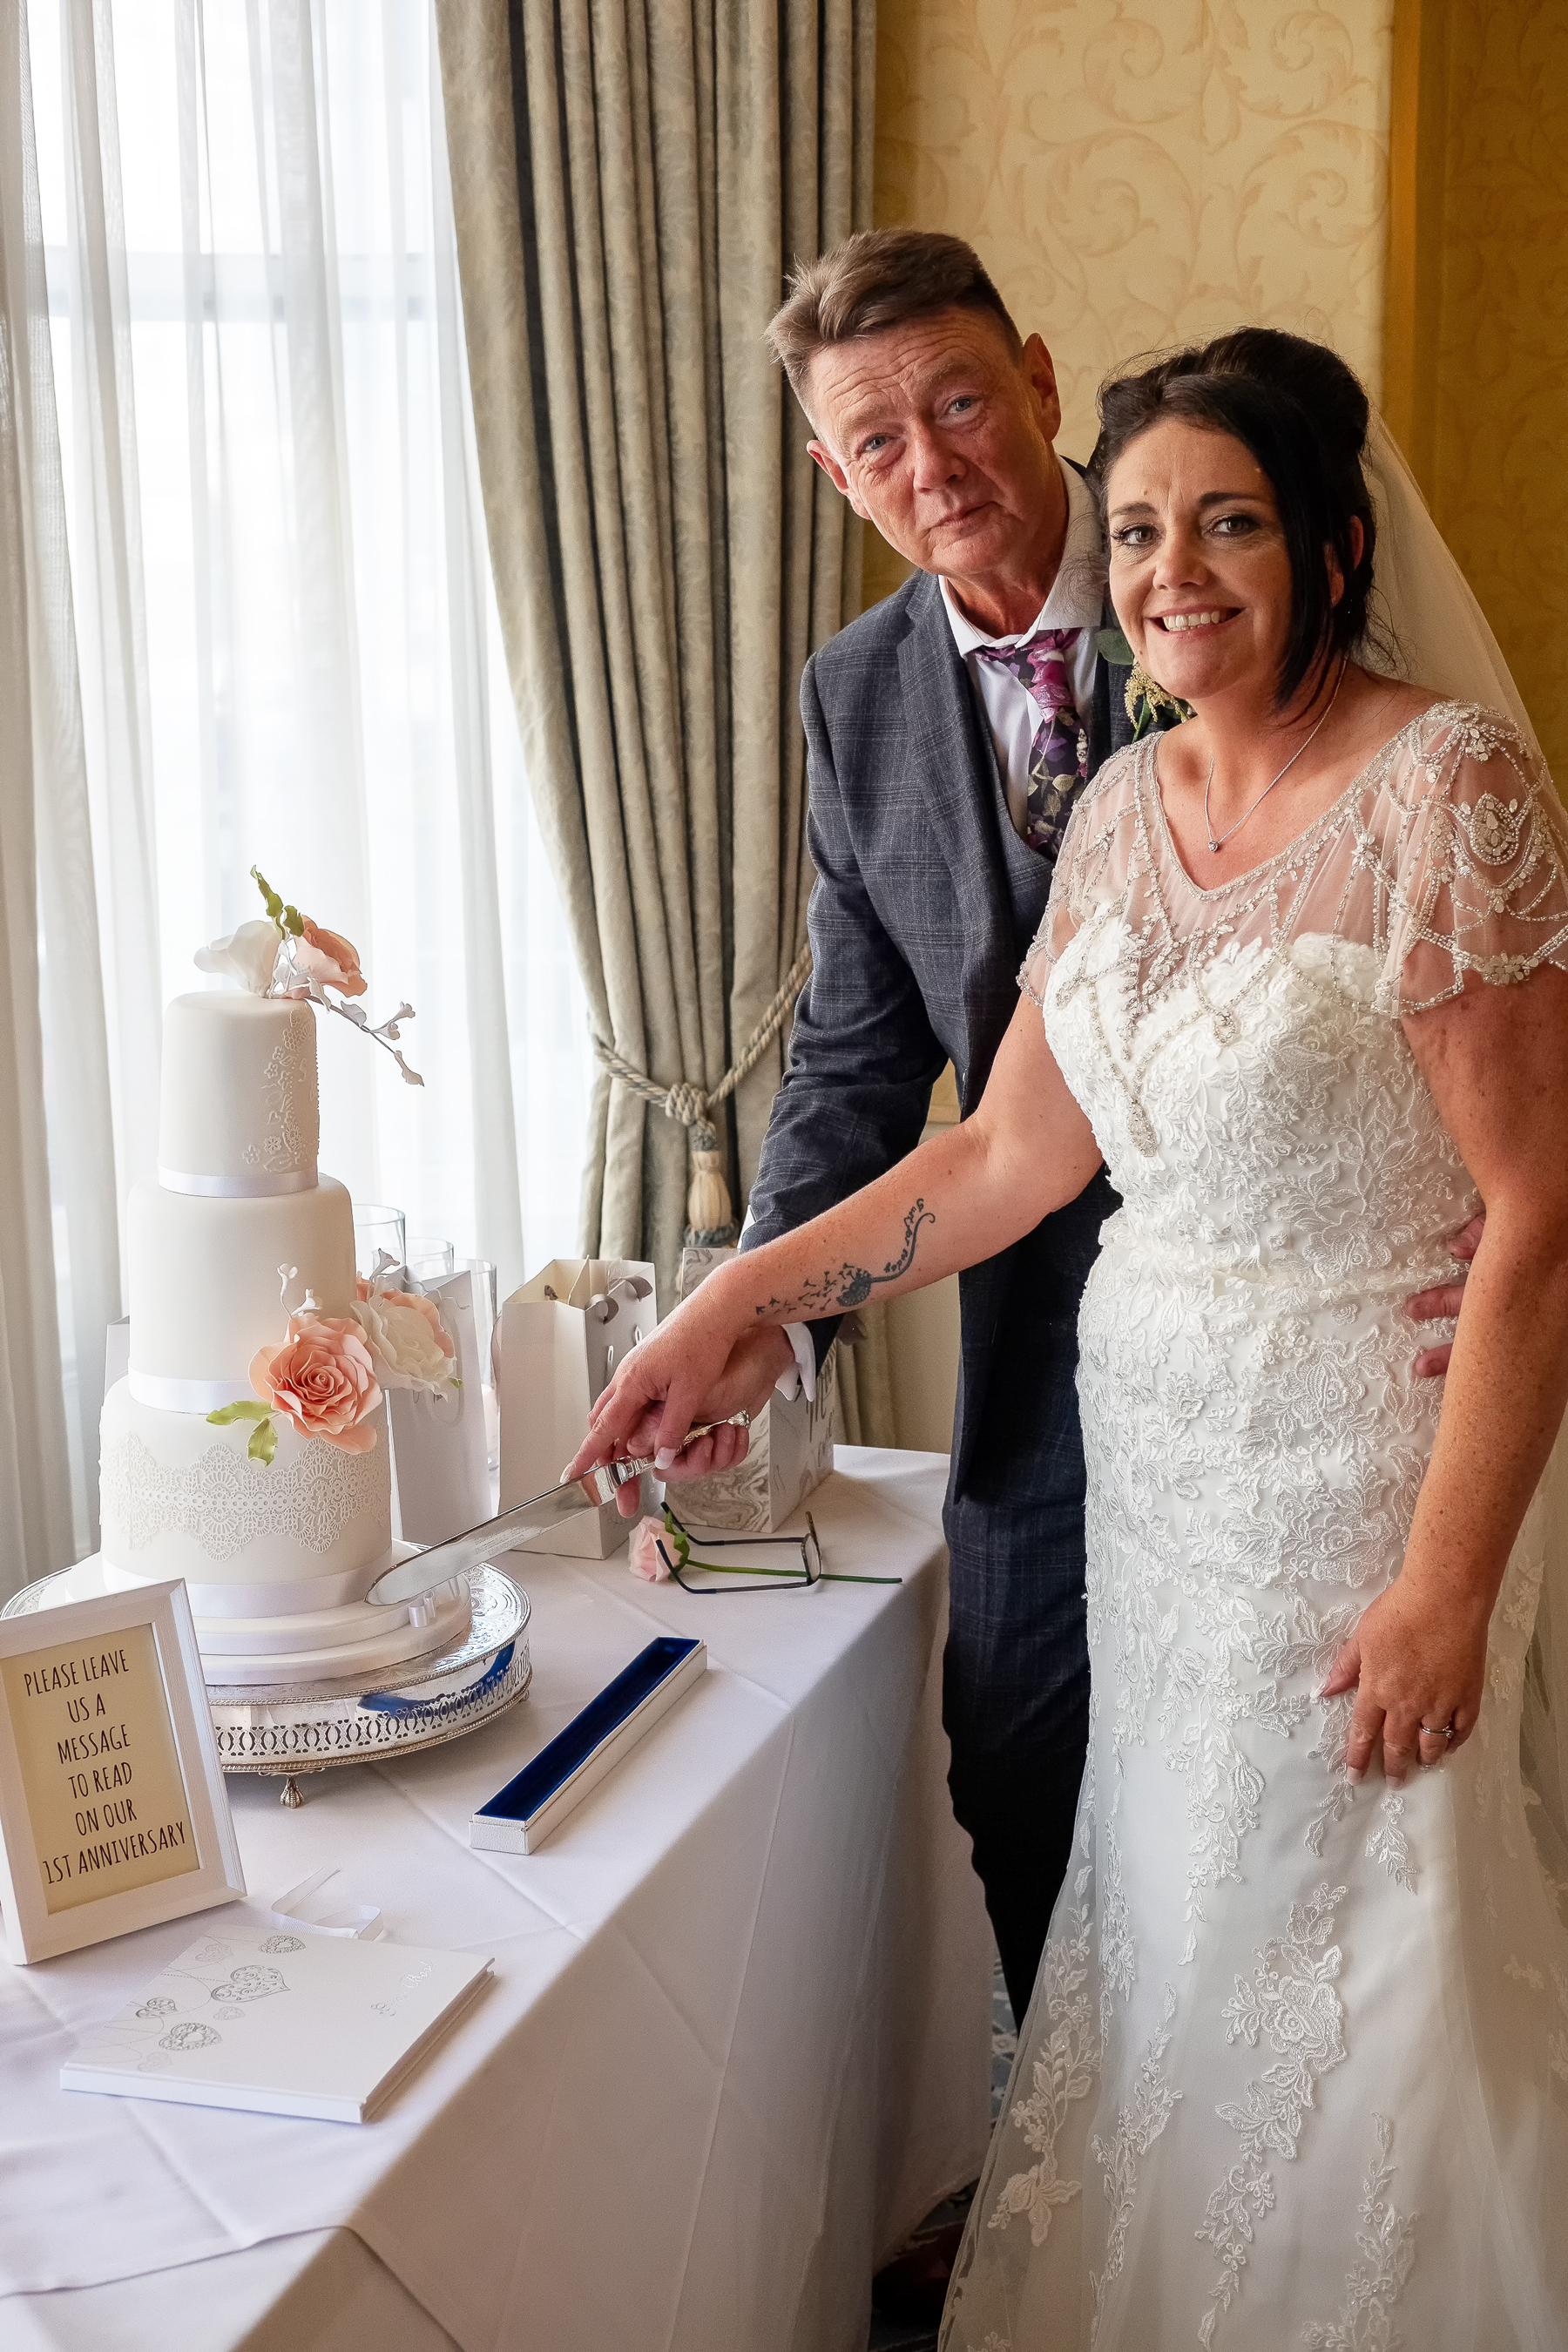 Cutting the cake! Picture: Phil Rogers